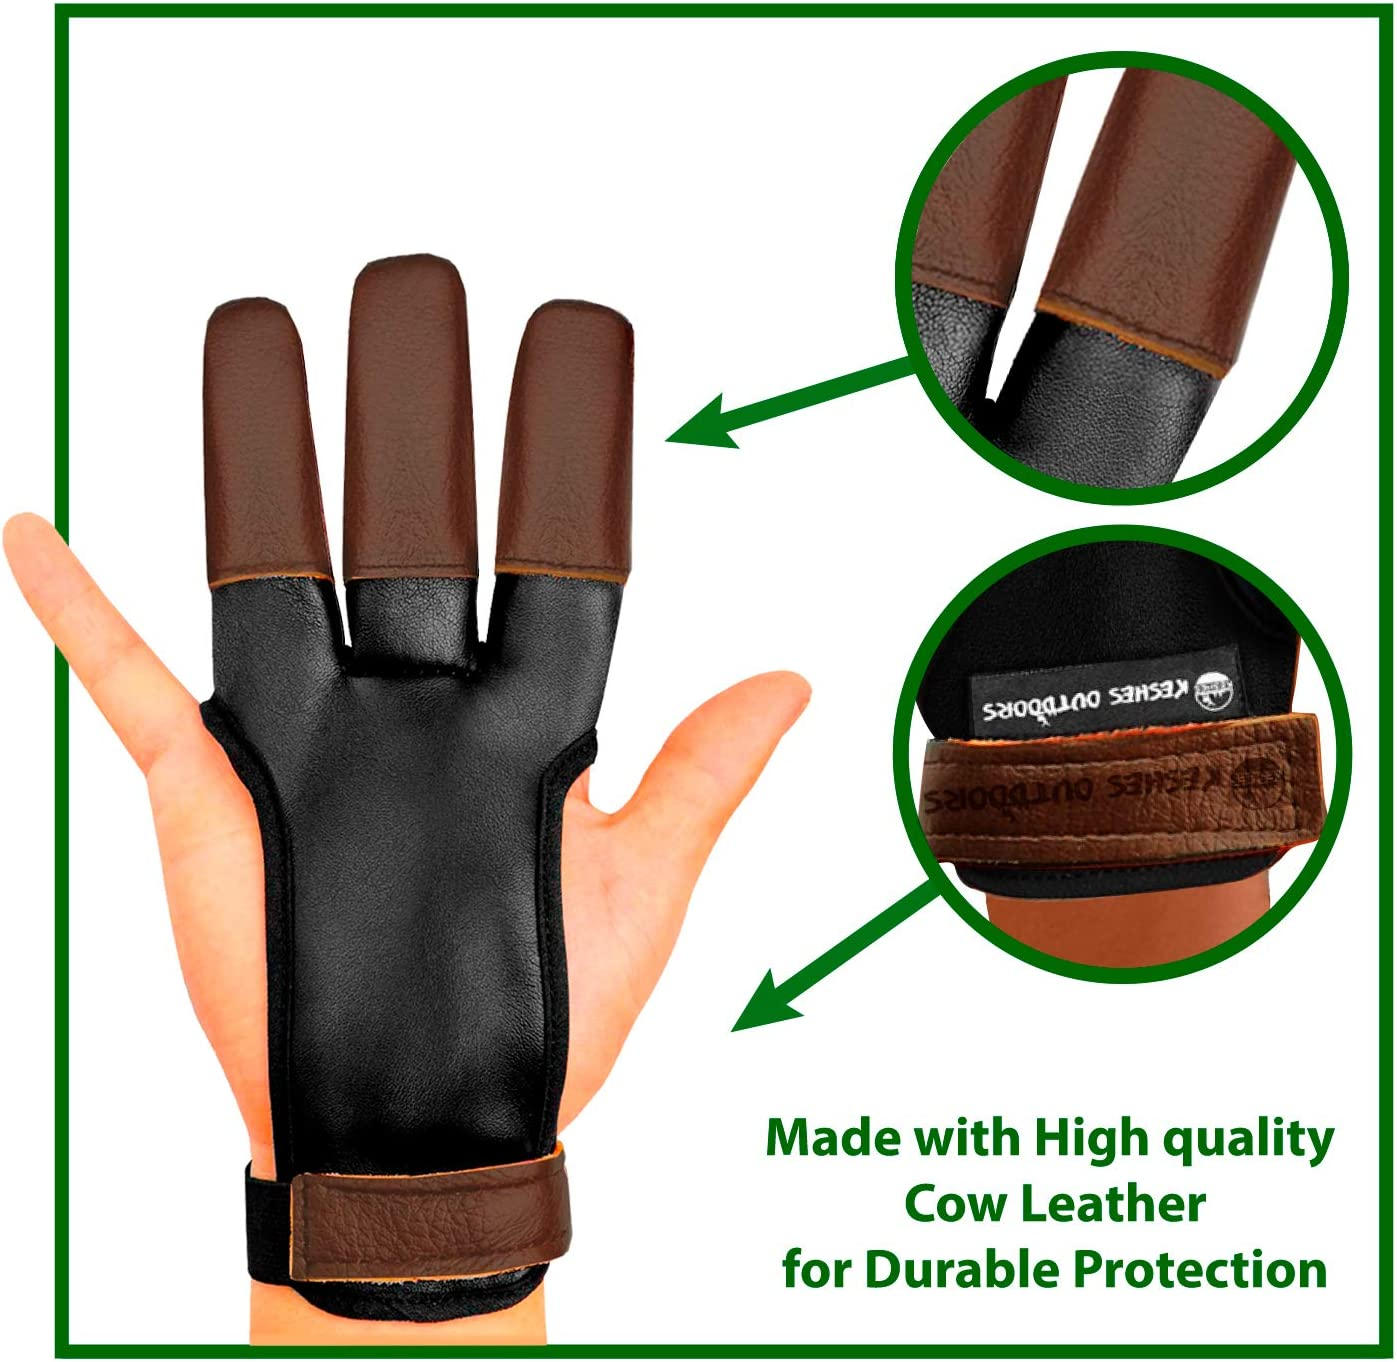 KESHES Archery Glove Finger Tab Accessories Large Leather Gloves for Recurve /& Compound Bow Three Finger Guard for Men Women /& Youth